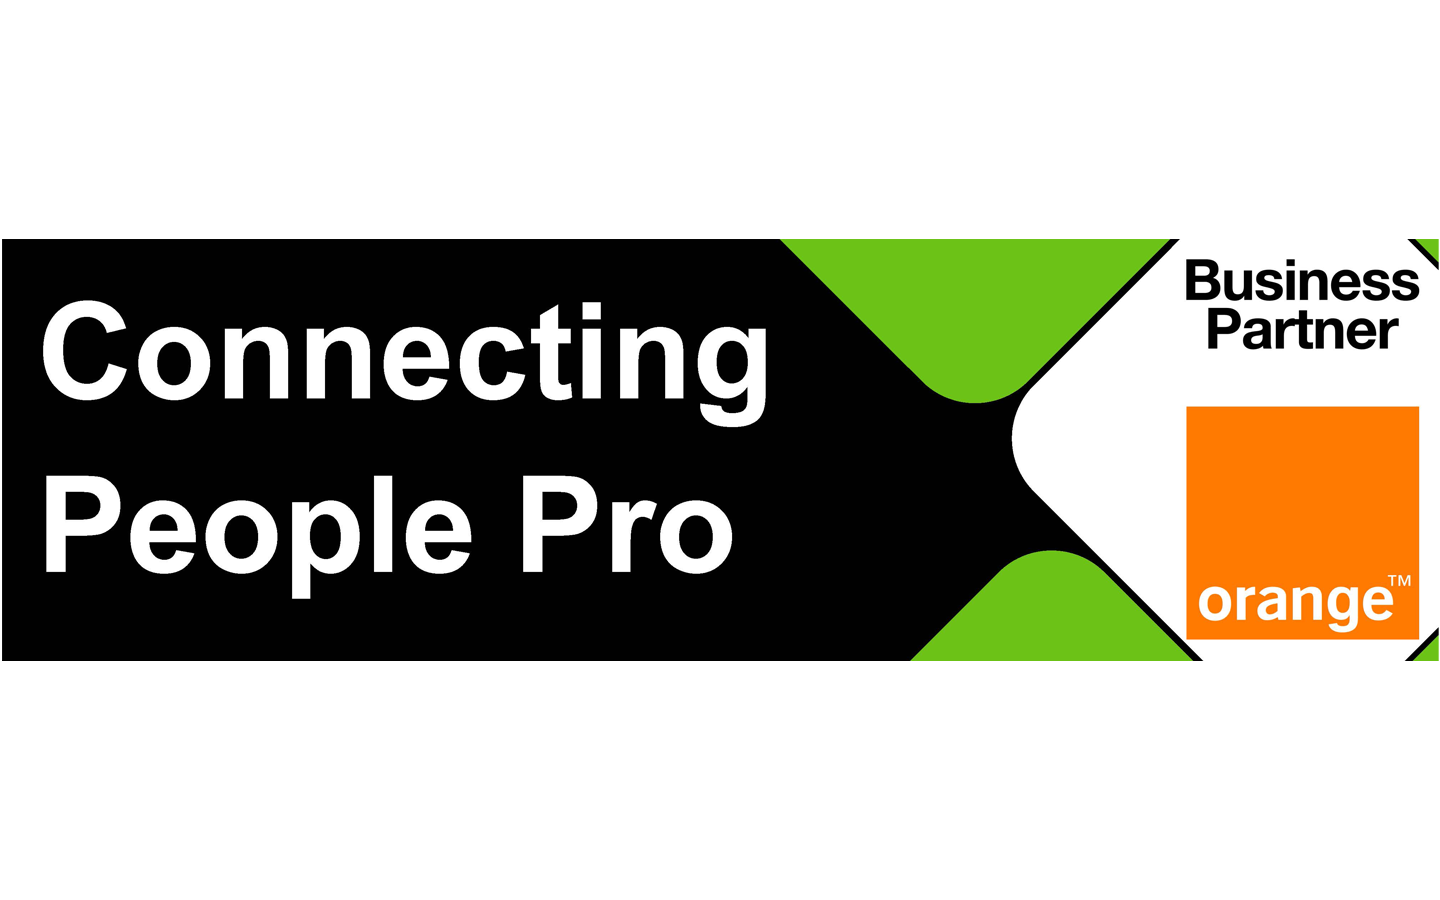 Connectingpeople